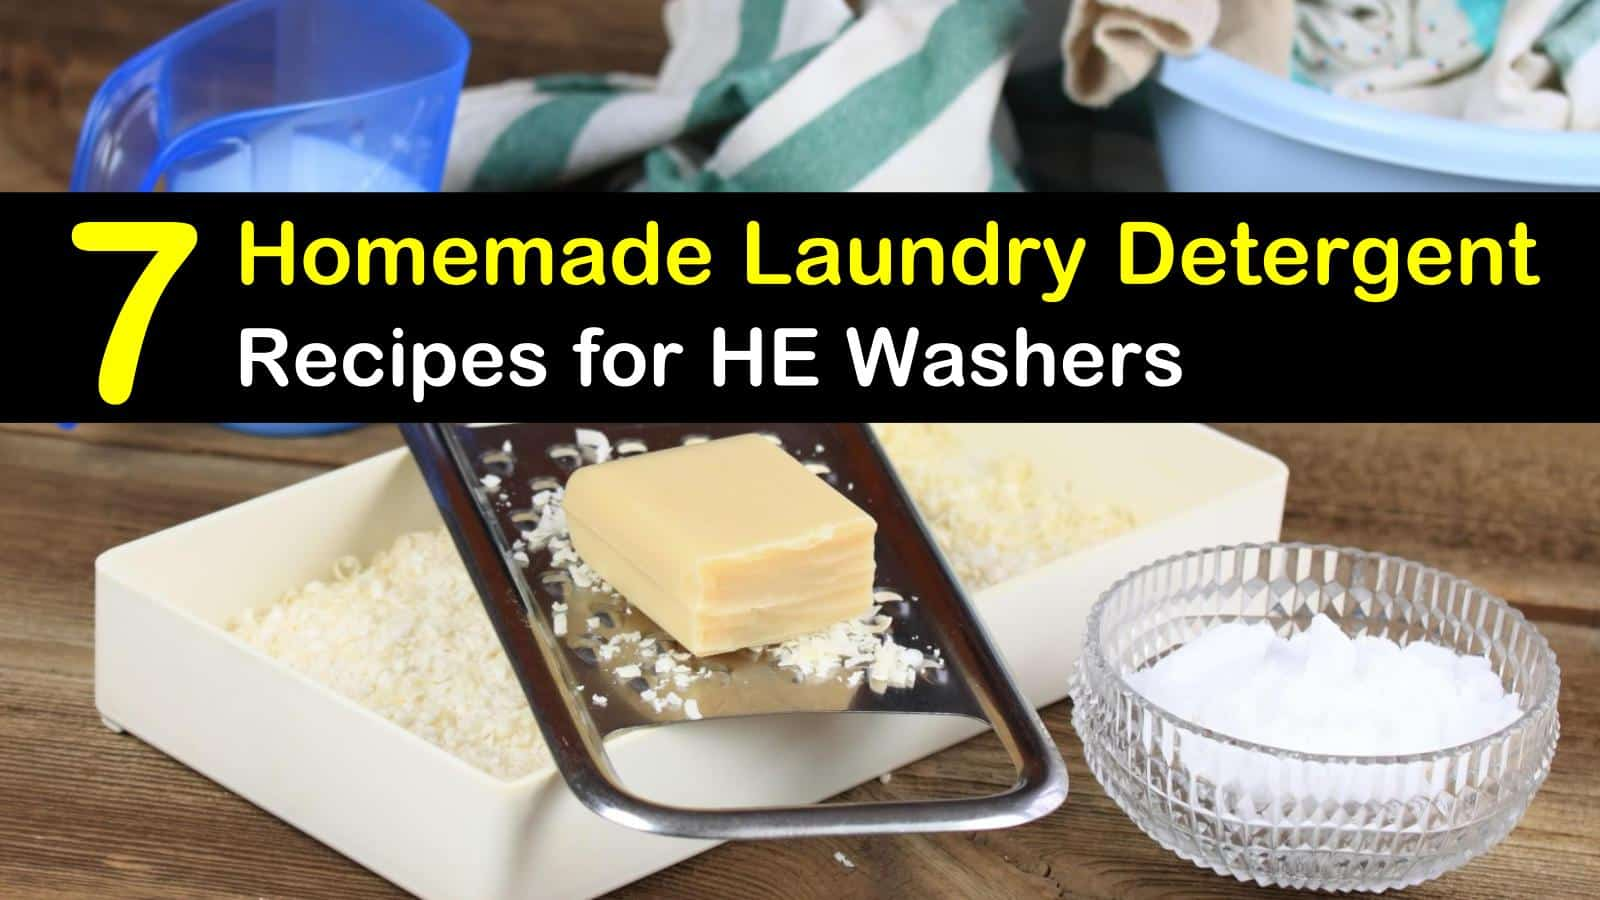 Laundry Detergent for HE Washers